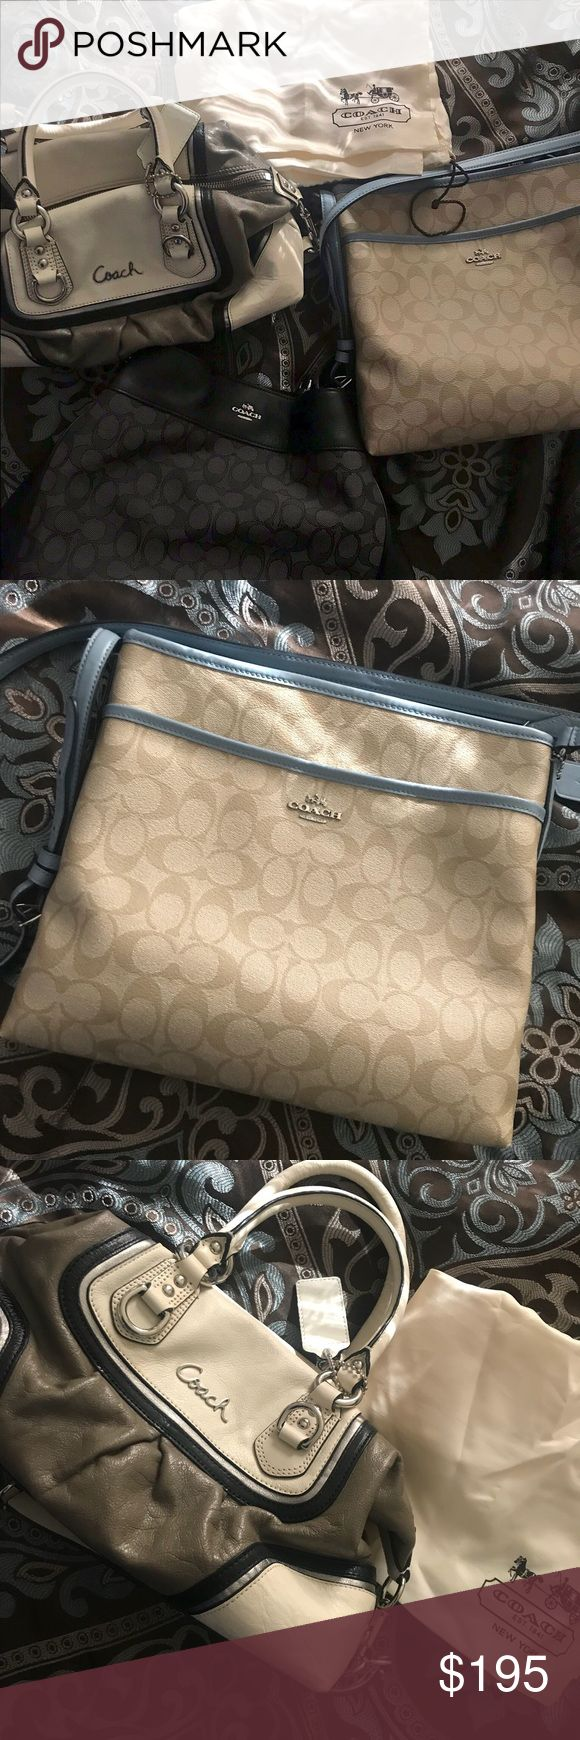 Coach purses and wallet!!!!!! Tan/cream colored purse for $30  Tan and blue purse for $60   Black coach purse for $80   Wallet for $25 Coach Bags Crossbody Bags